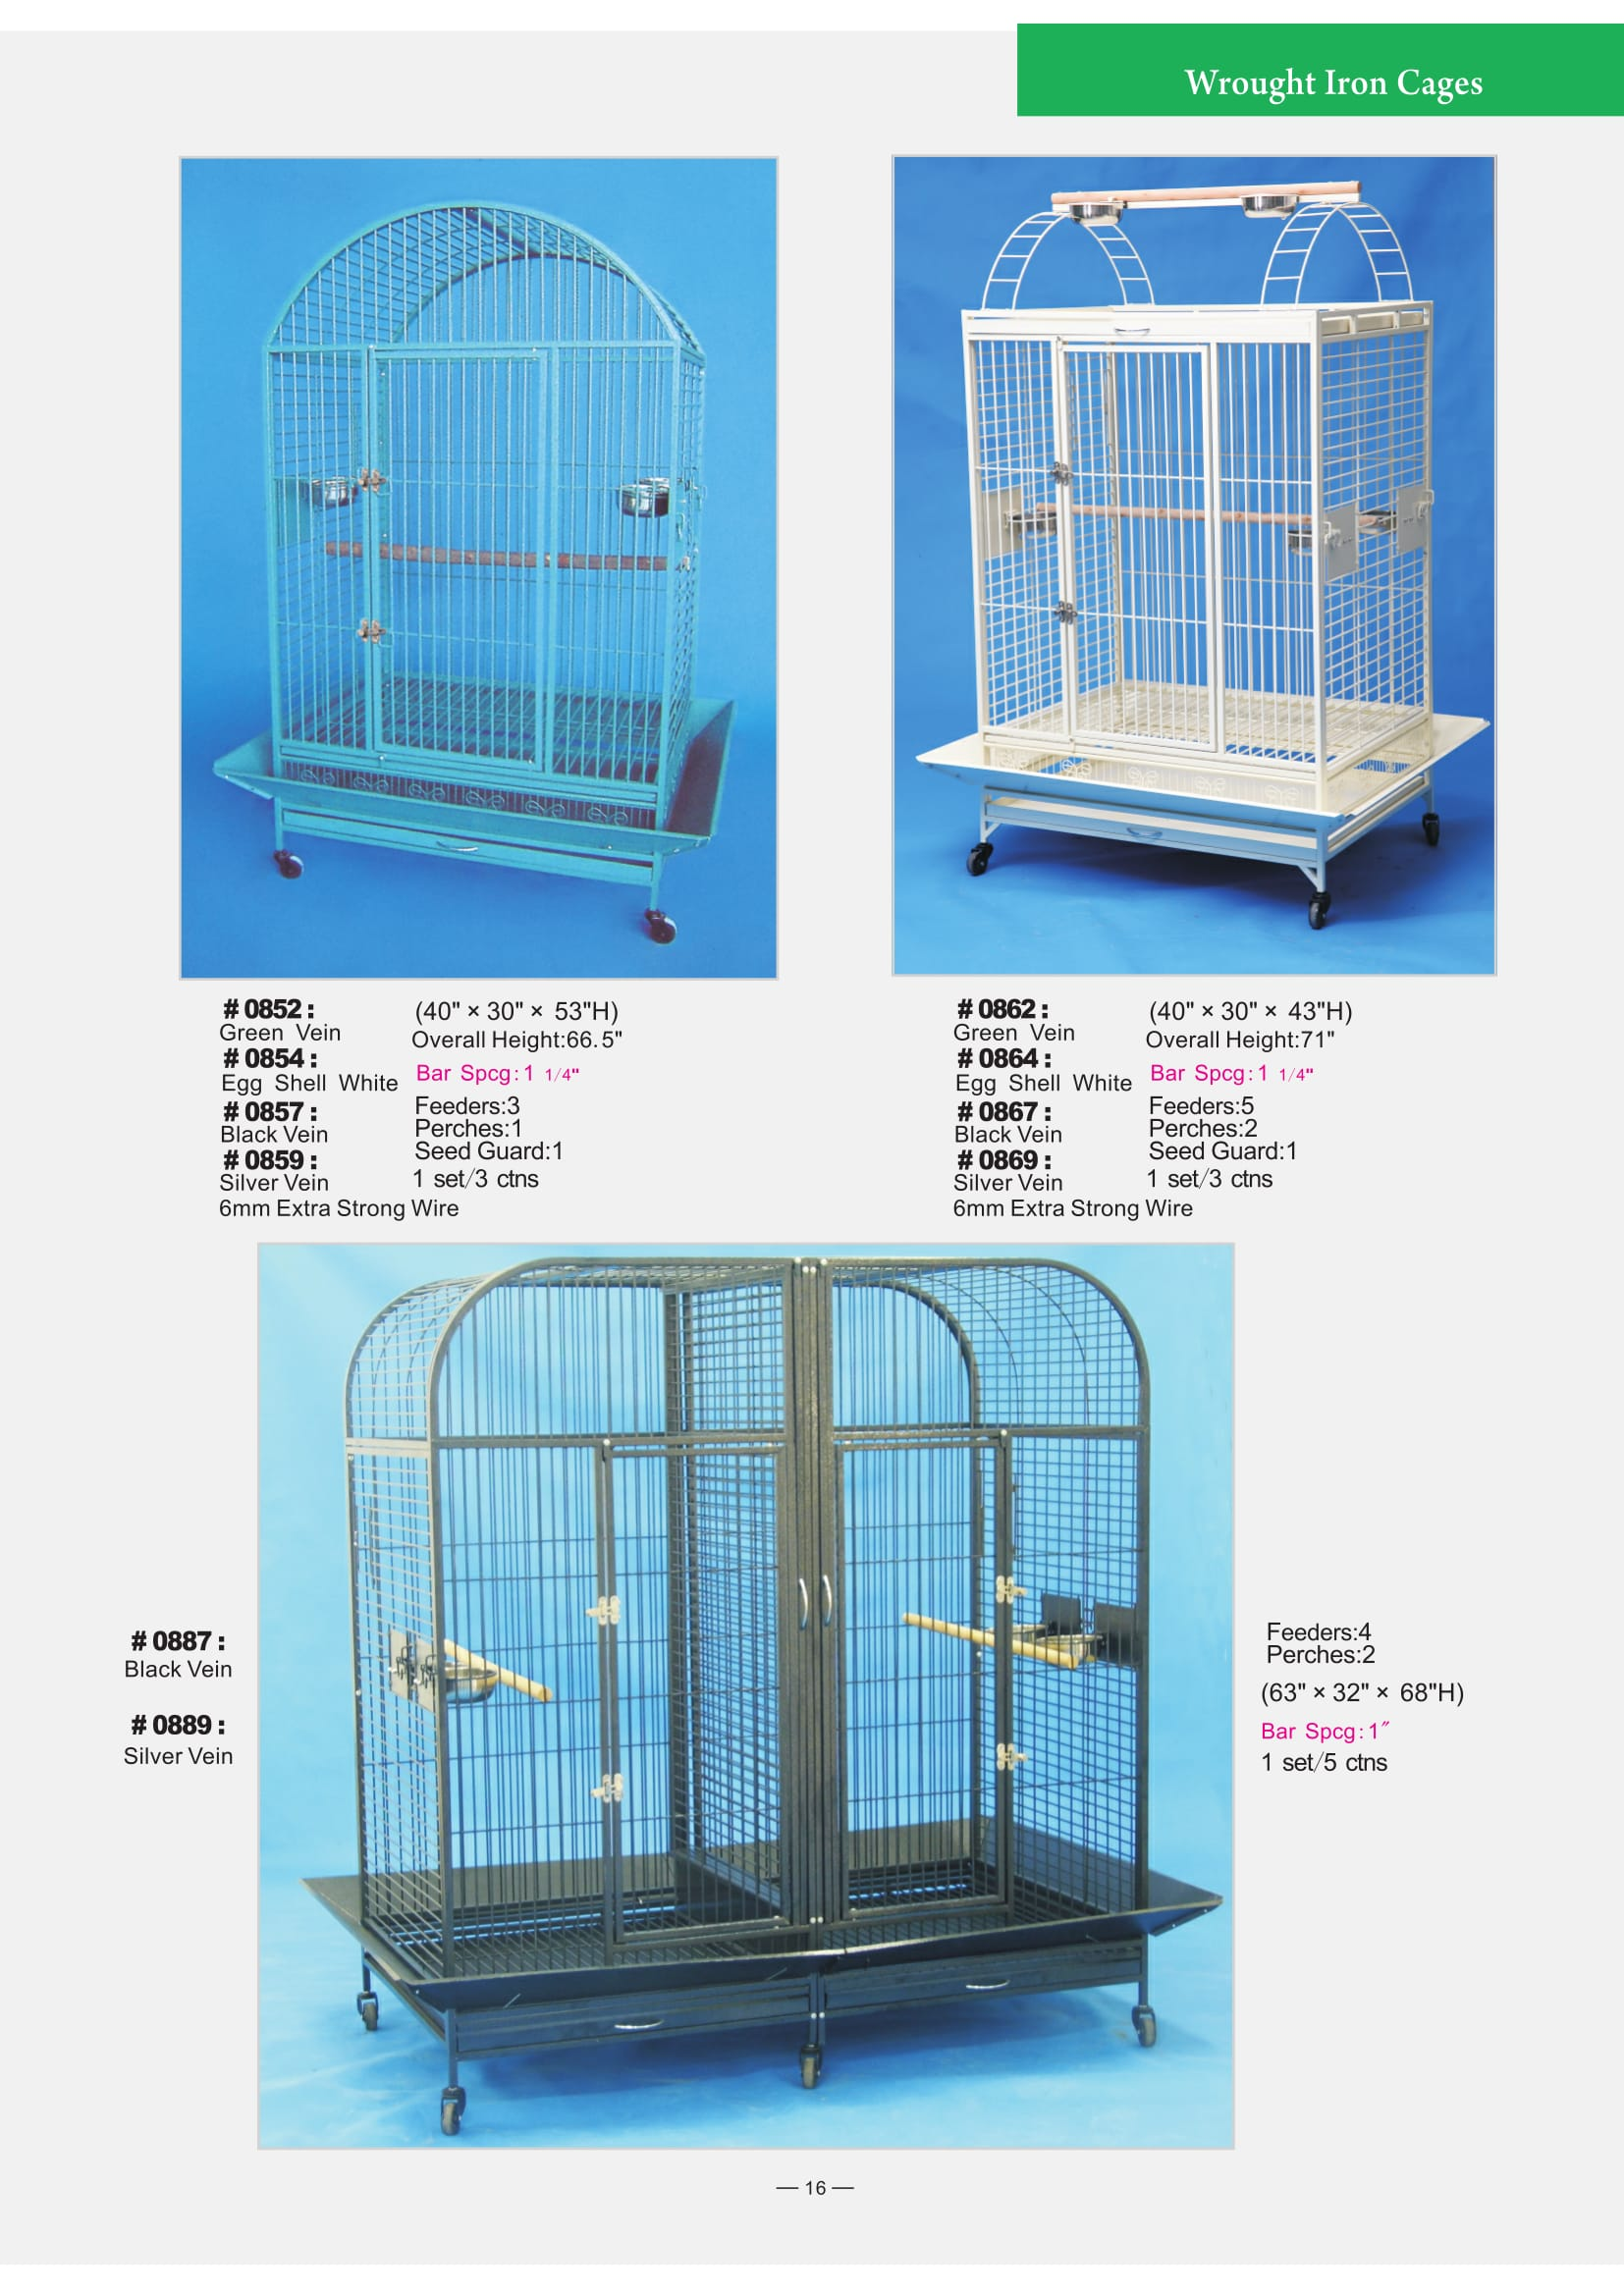 6. Wrought Iron Cages-6